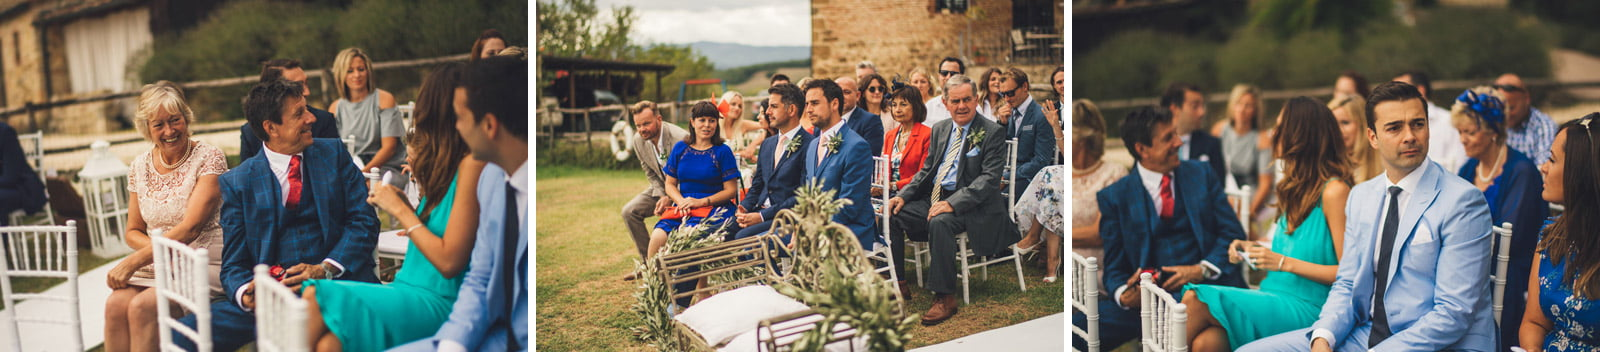 043-wedding-tuscany-san-galgano-federico-pannacci-photographer